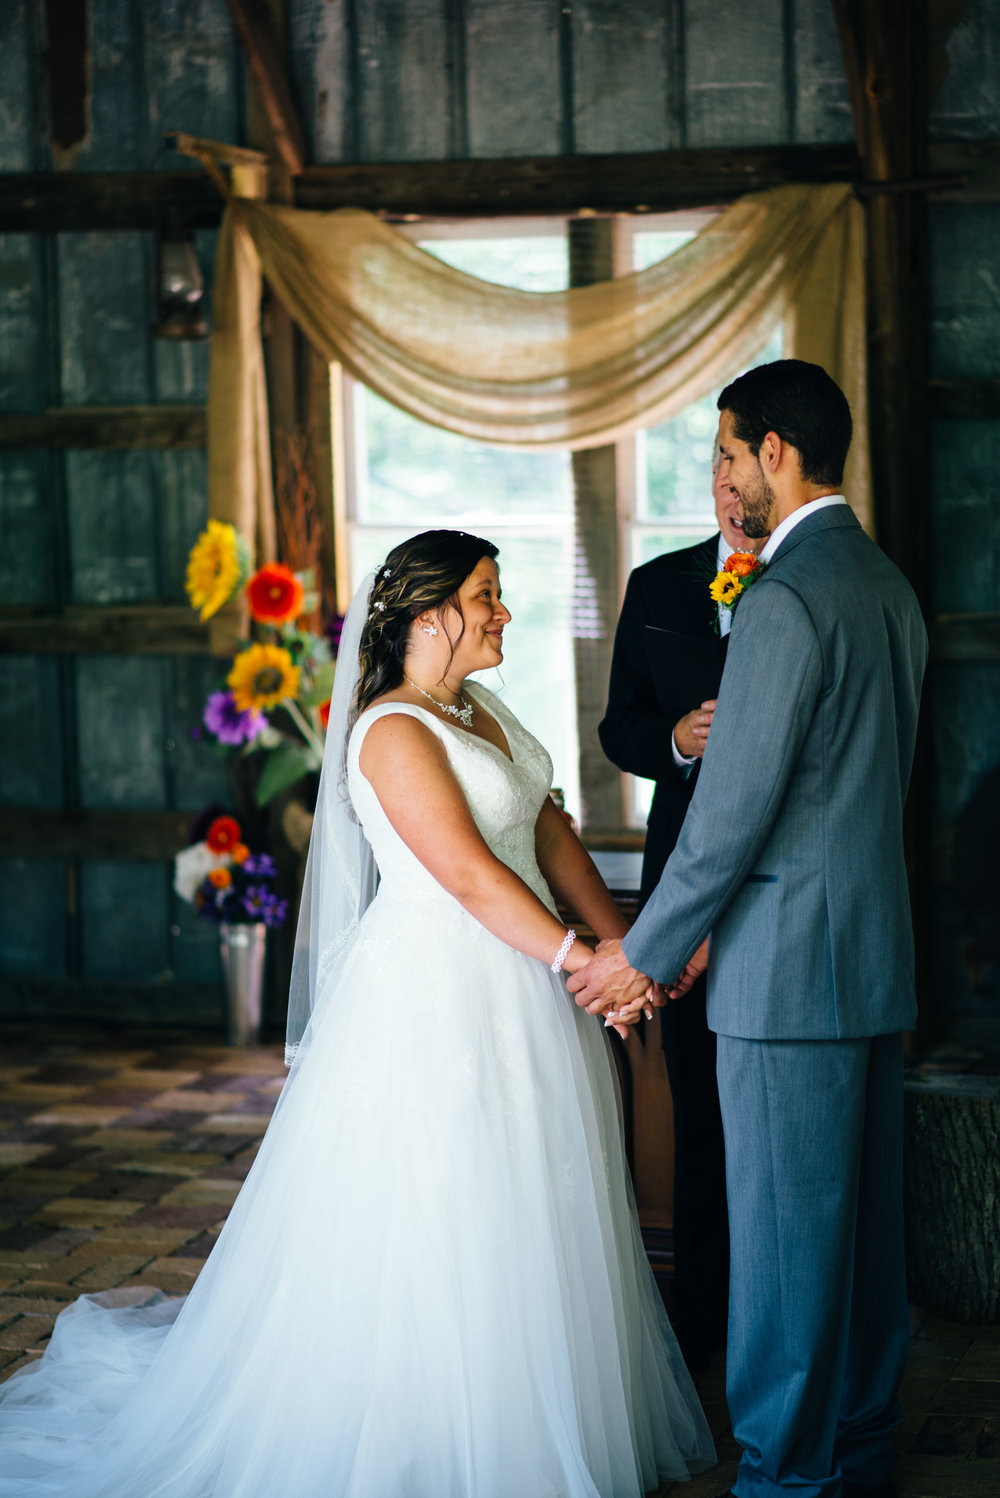 Bride and groom exchanging vows at The Farm on the Ridge in Hooversville PA